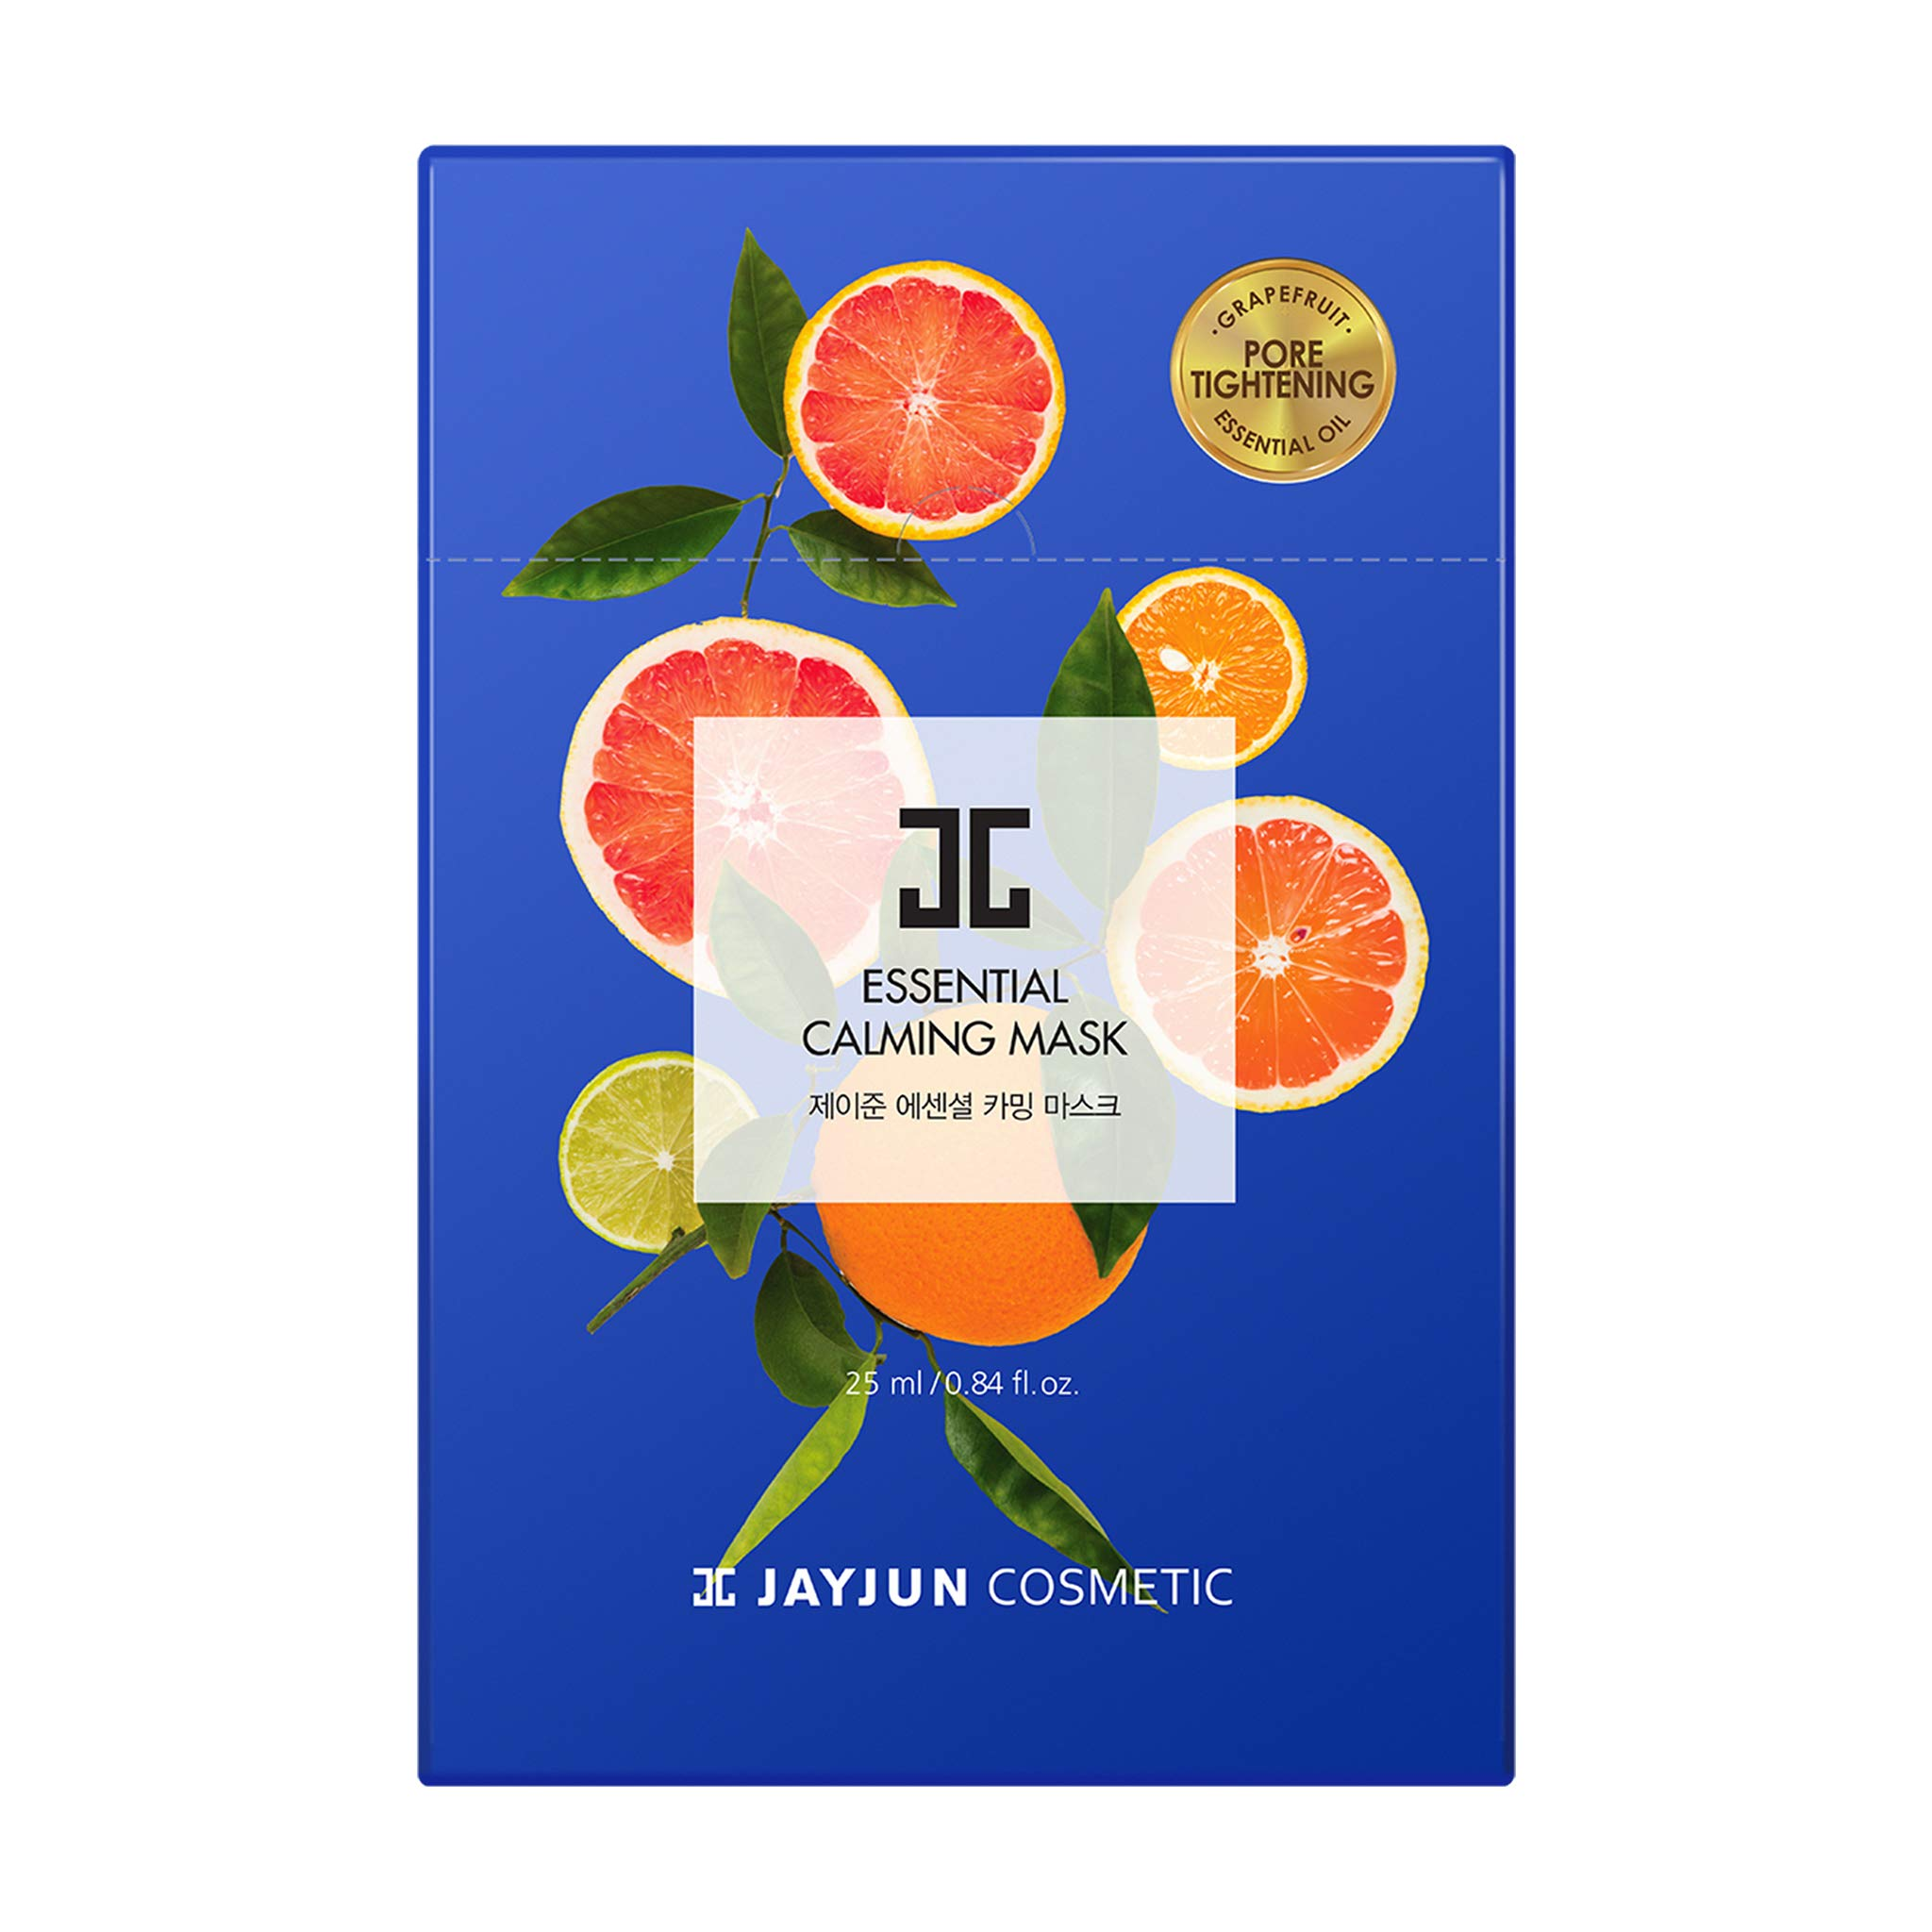 amazon.com - JAYJUN Essential Calming Mask, Pack of 10 Sheets, Grapefruit, Tea Tree, Soothing, Sheet Mask, Hydrating